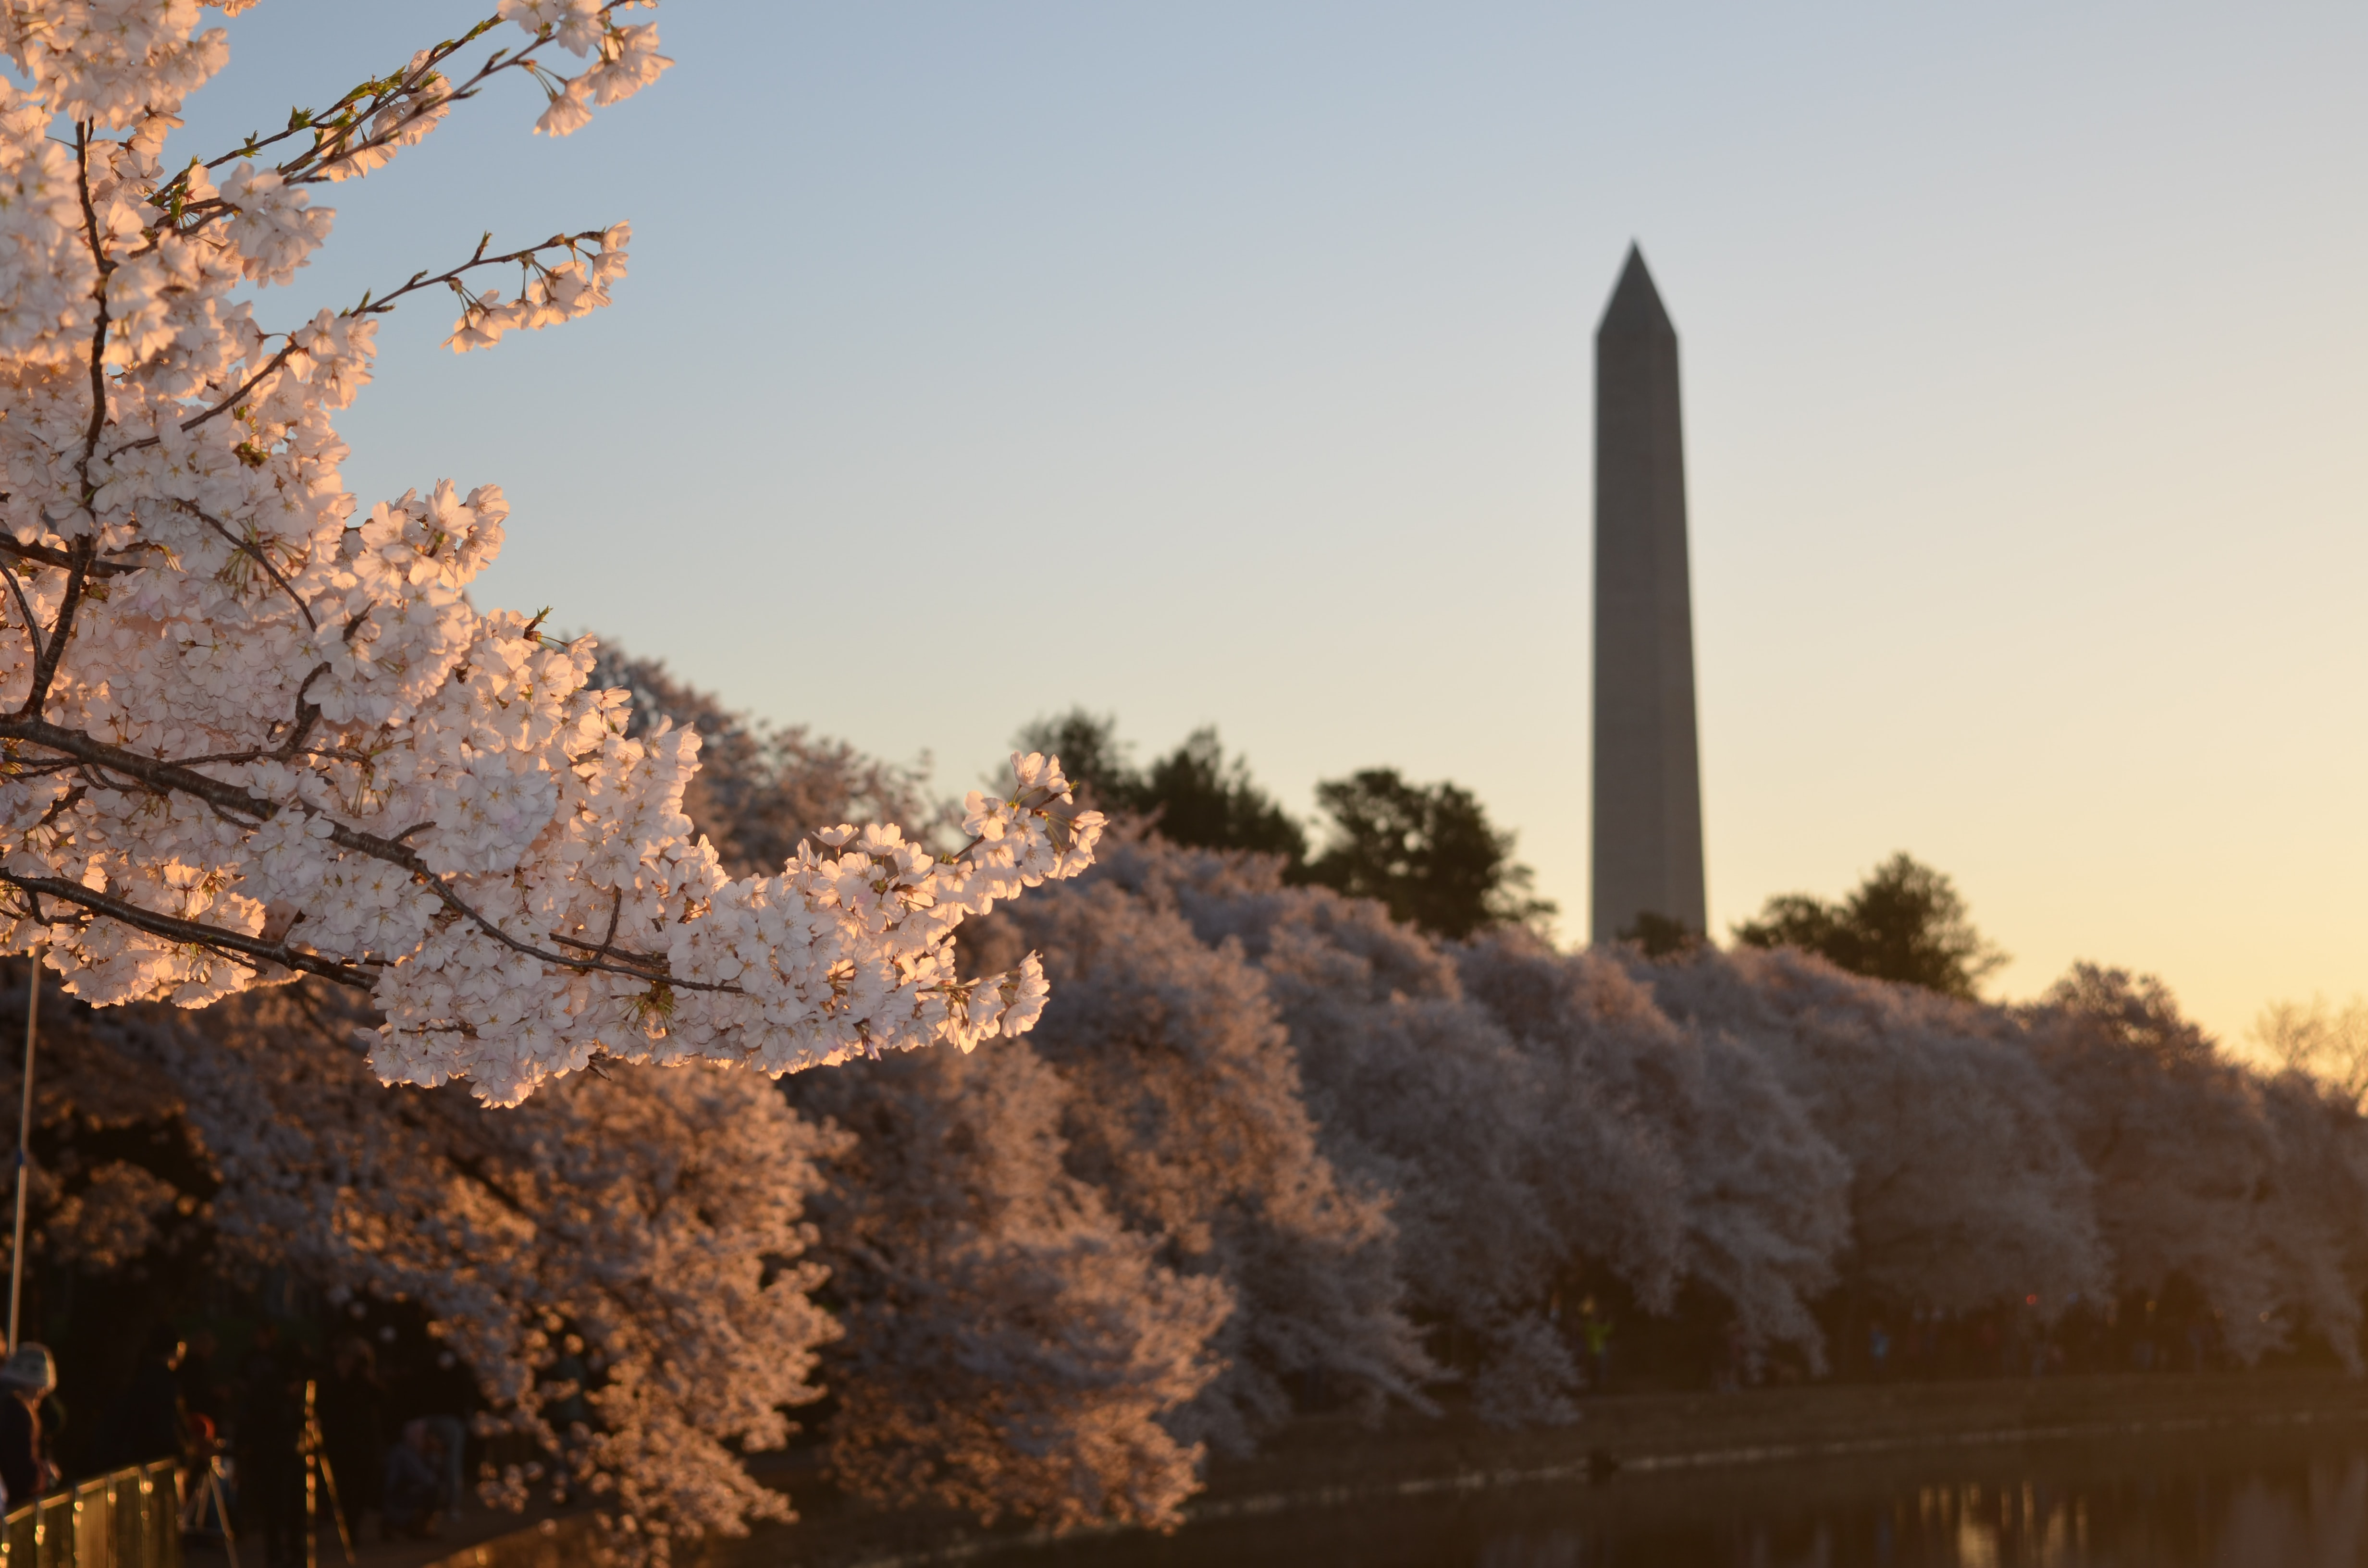 Trees covered with white blossom under a towering obelisk